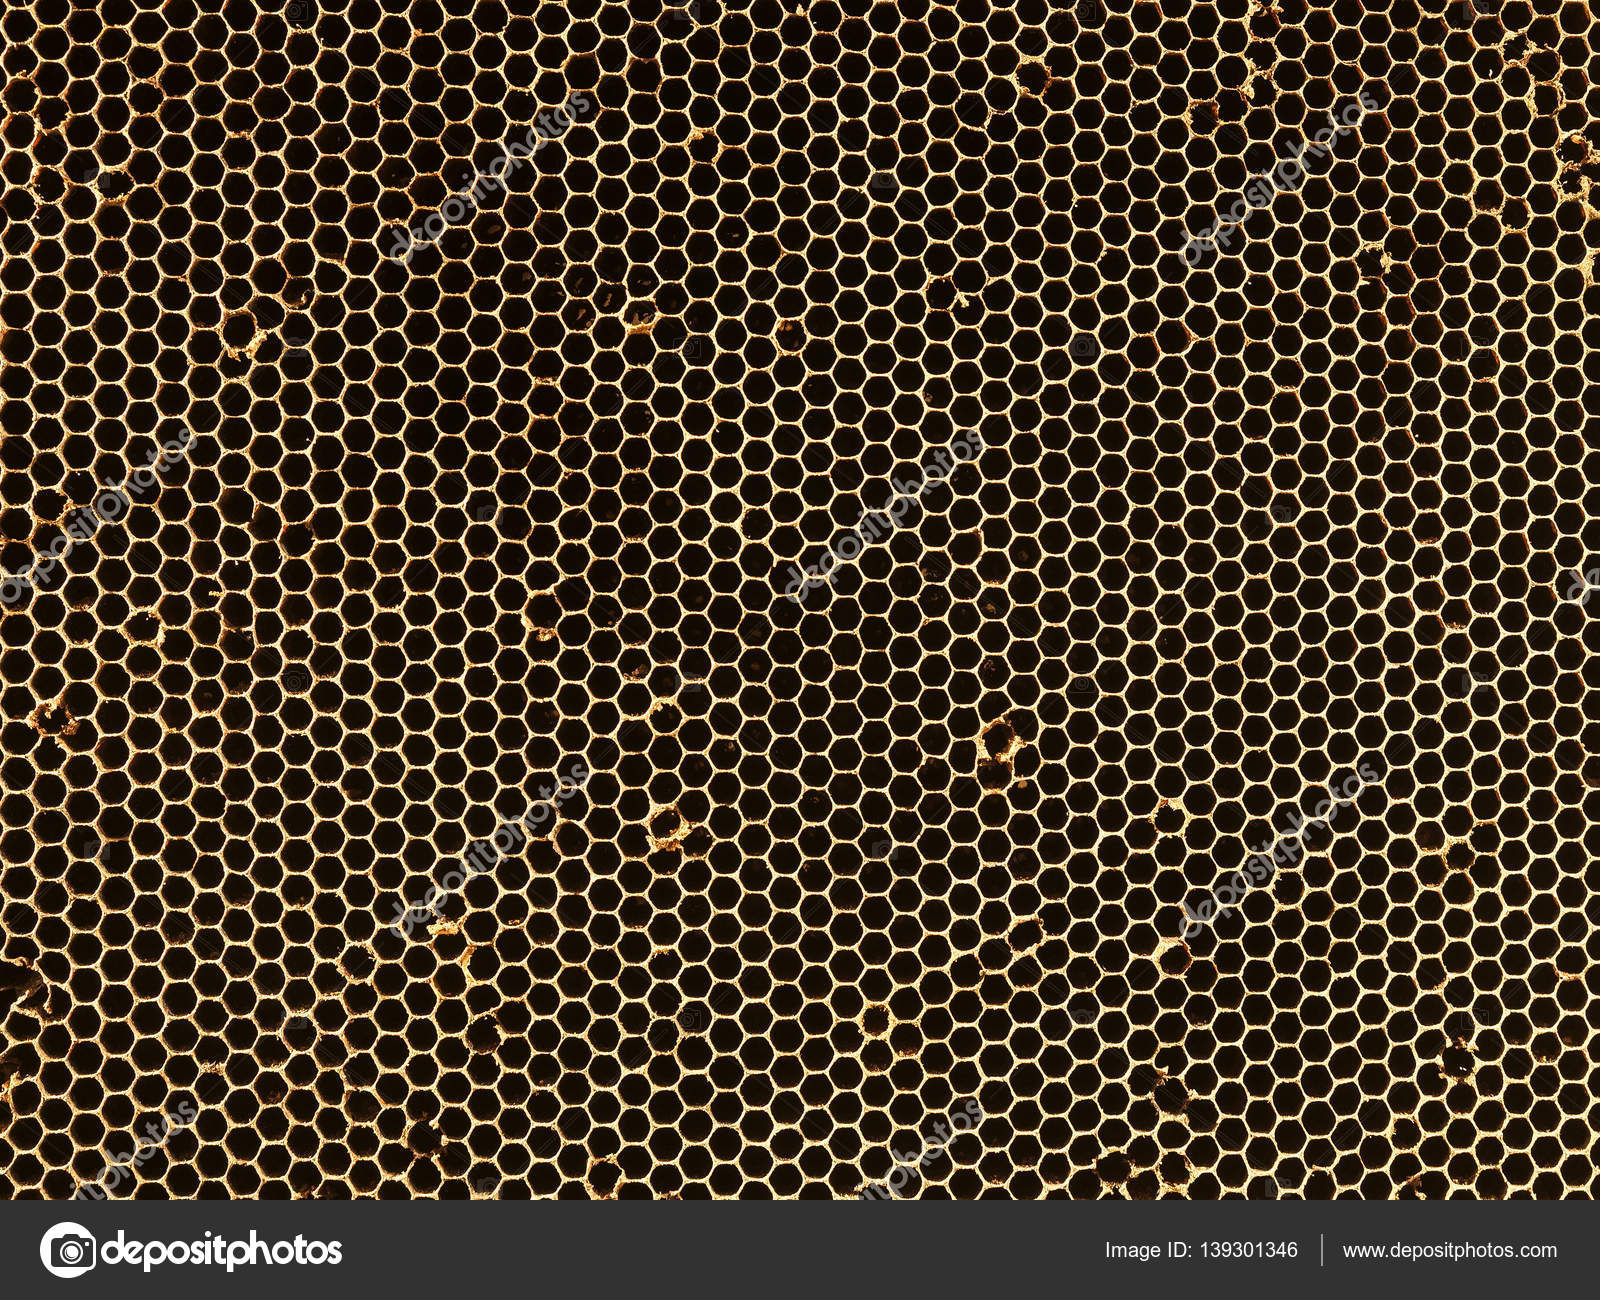 Beehive Honeycomb Pattern Textured — Stock Photo © viteethumb #139301346